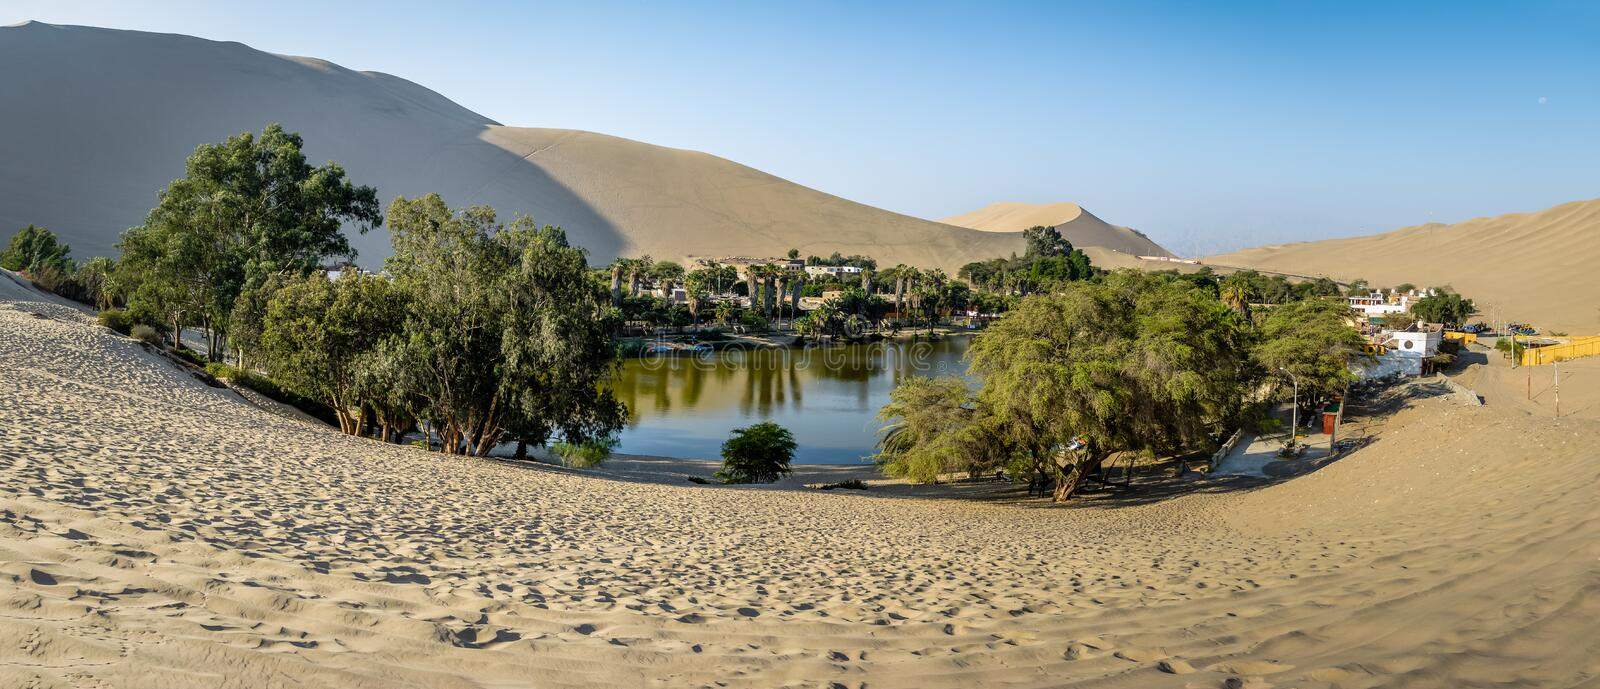 Panoramic view of Huacachina Oasis - Ica, Peru stock image